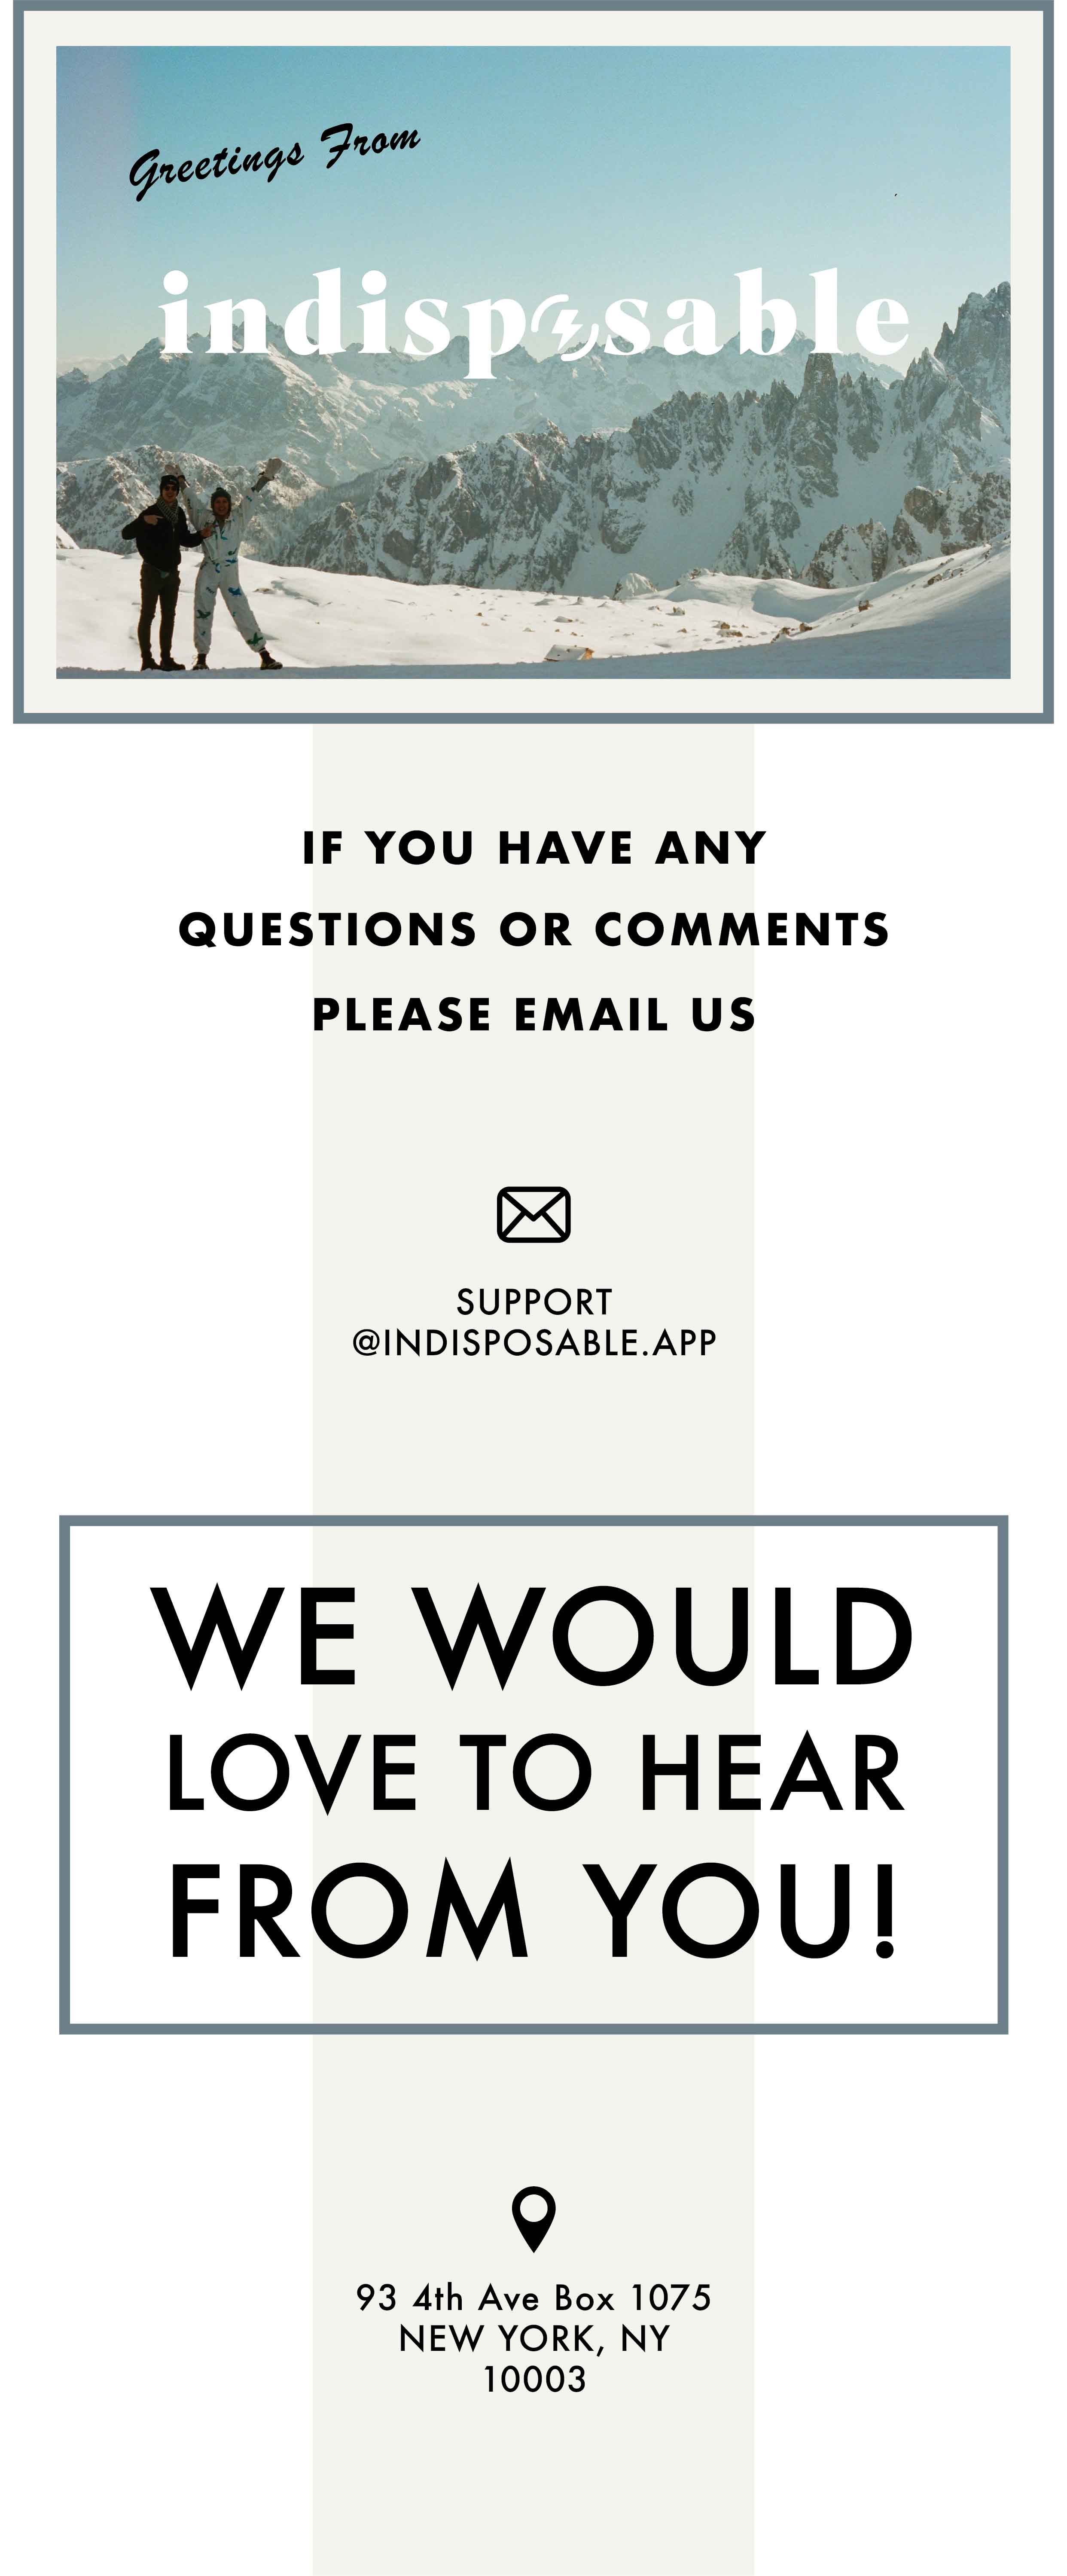 Contact us: Support@indisposable.app